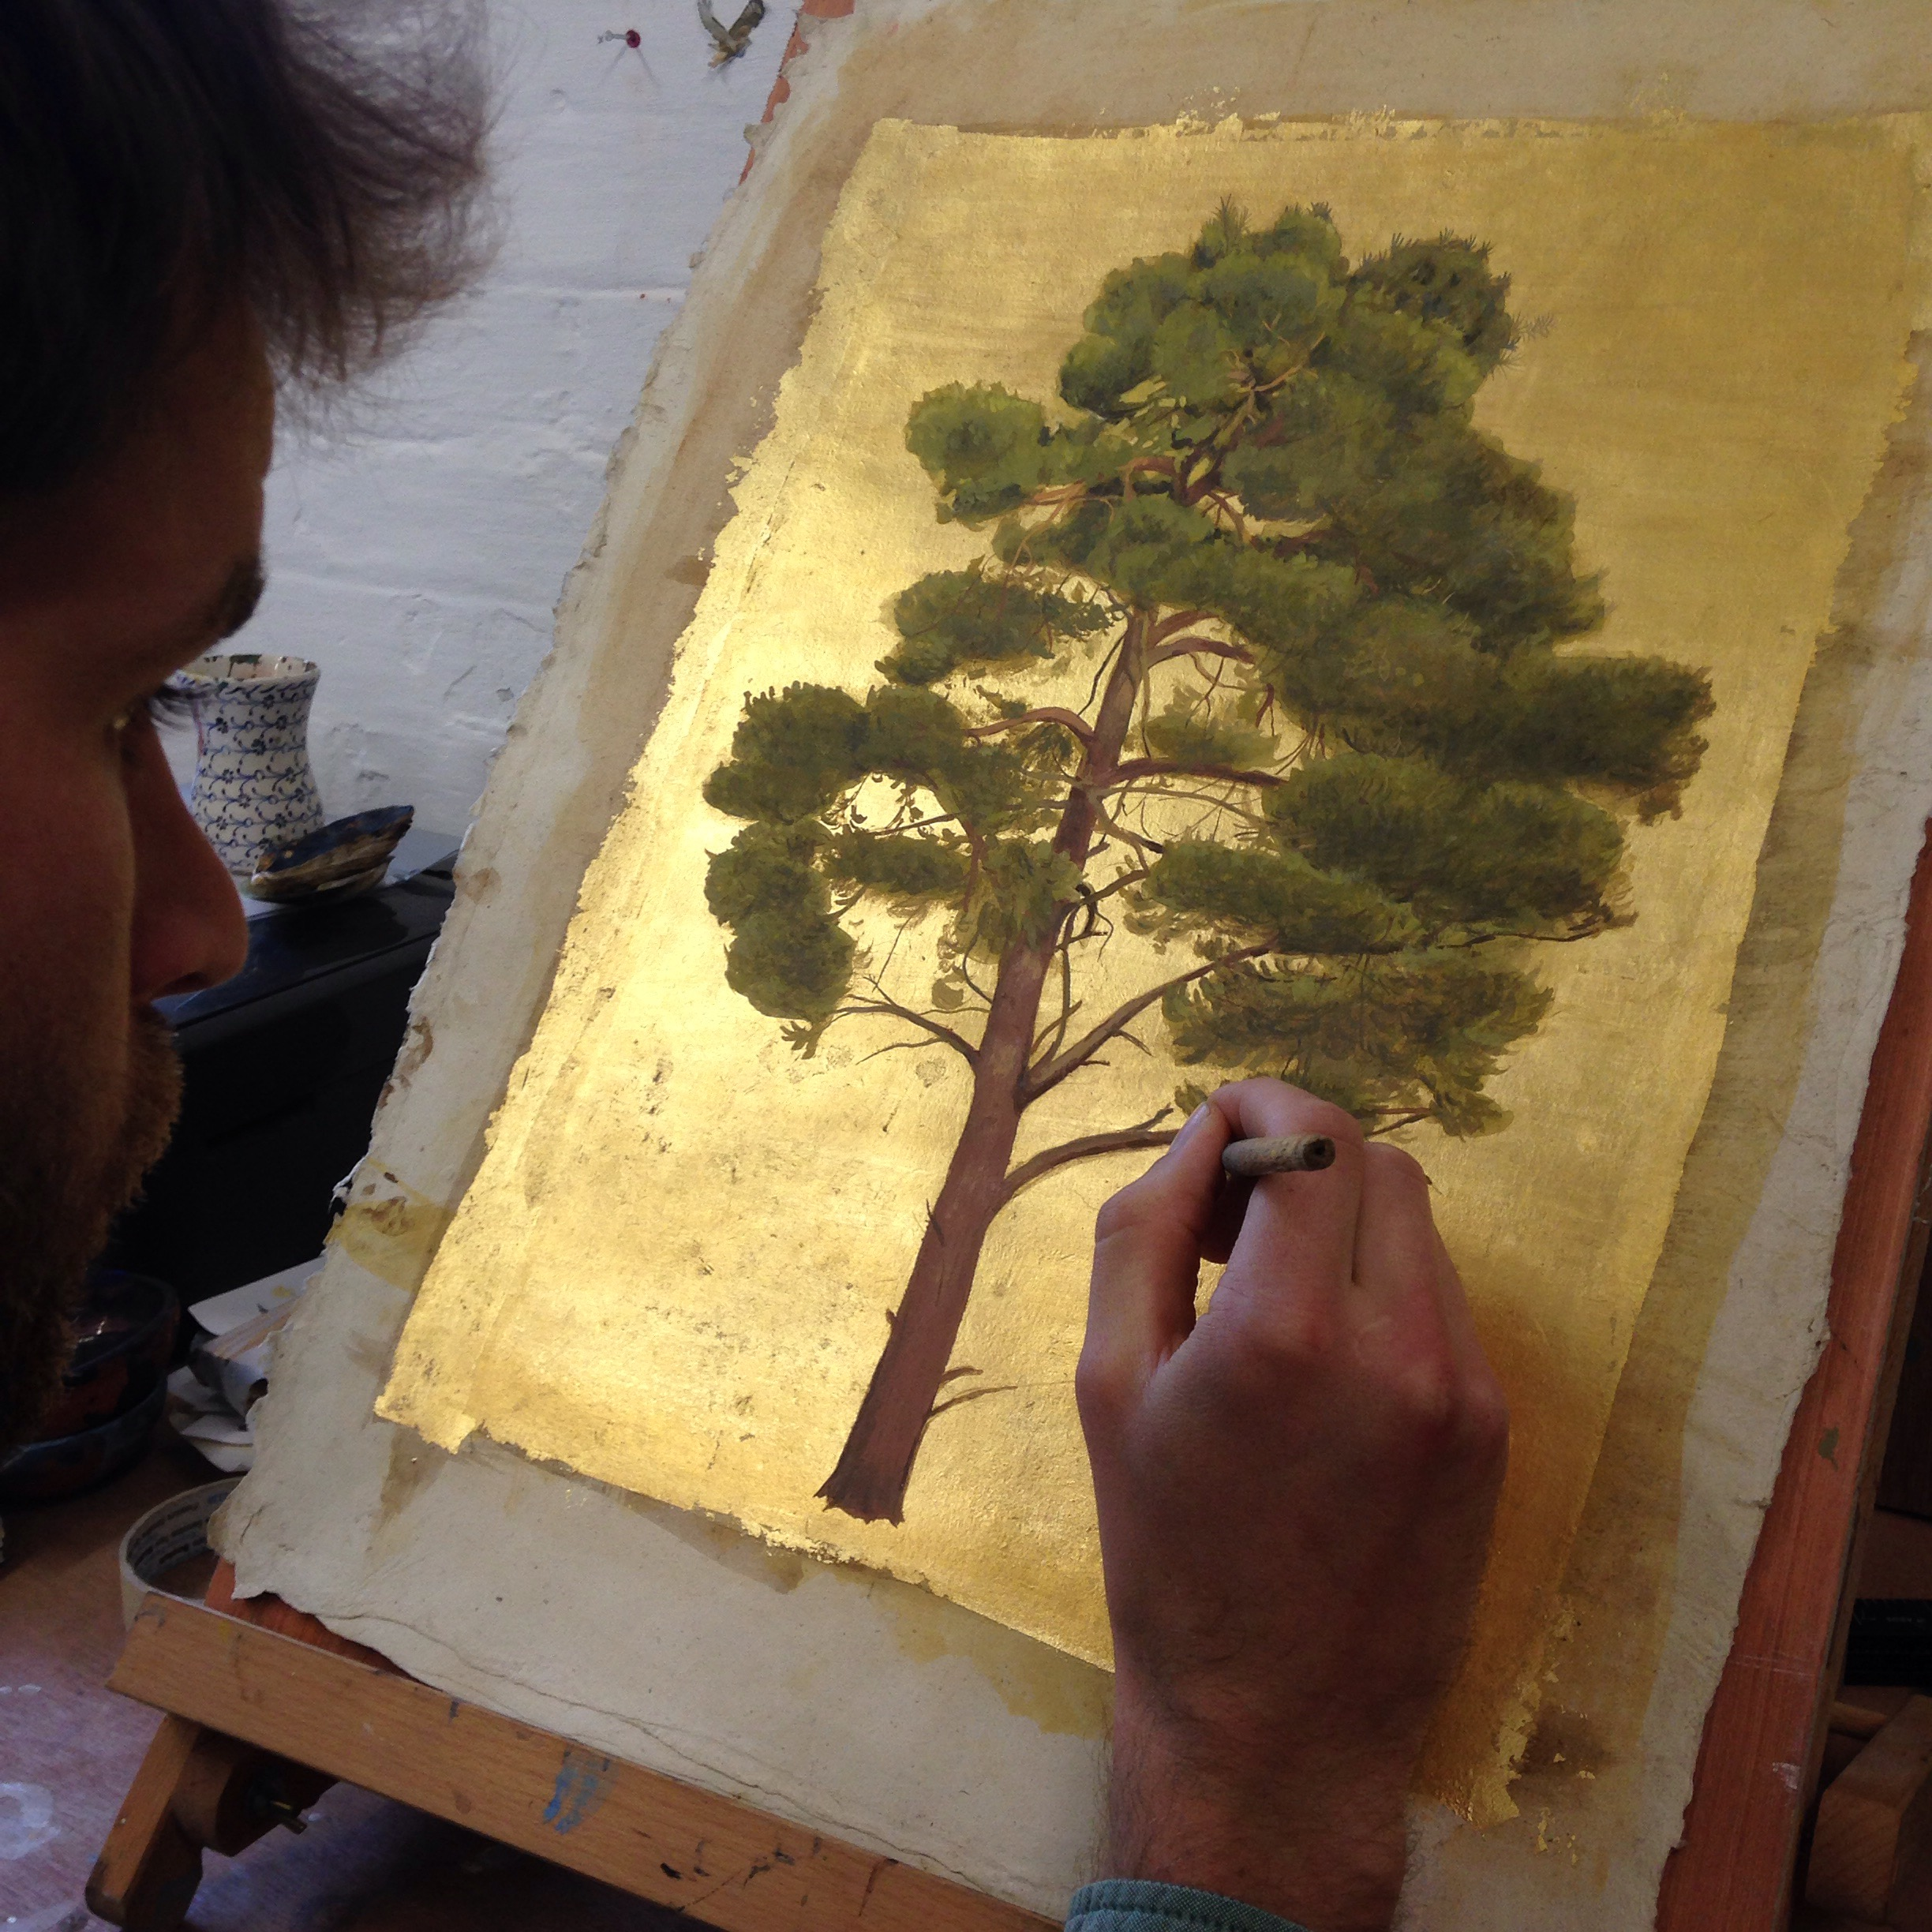 """The London Art fair opens tomorrow and is on until January the 22nd. 'The Scots Pine' will be there! In the Crane Kalman booth.For sale. It is a portrait of a tree I know well on the outskirts of Wytham woods in Oxford.  Lost     A native American Elder was asked,    """"What shall we do if we get lost?""""   Stand still. The trees before you and the bushes beside you are not lost.  Wherever you are is a place called here,  and you must treat it as a powerful stranger  both asking to know and be known.  Listen. The forest whispers,  """"I have made this place, you can leave and return once again  saying, here.""""  No two trees are the same to Raven,  no two branches the same to Wren.  If what a tree or a branch does is lost on you,  you are truly lost.  Stand still. Listen.  The forest knows where you are.  Let it find you.  by David Wagoner"""